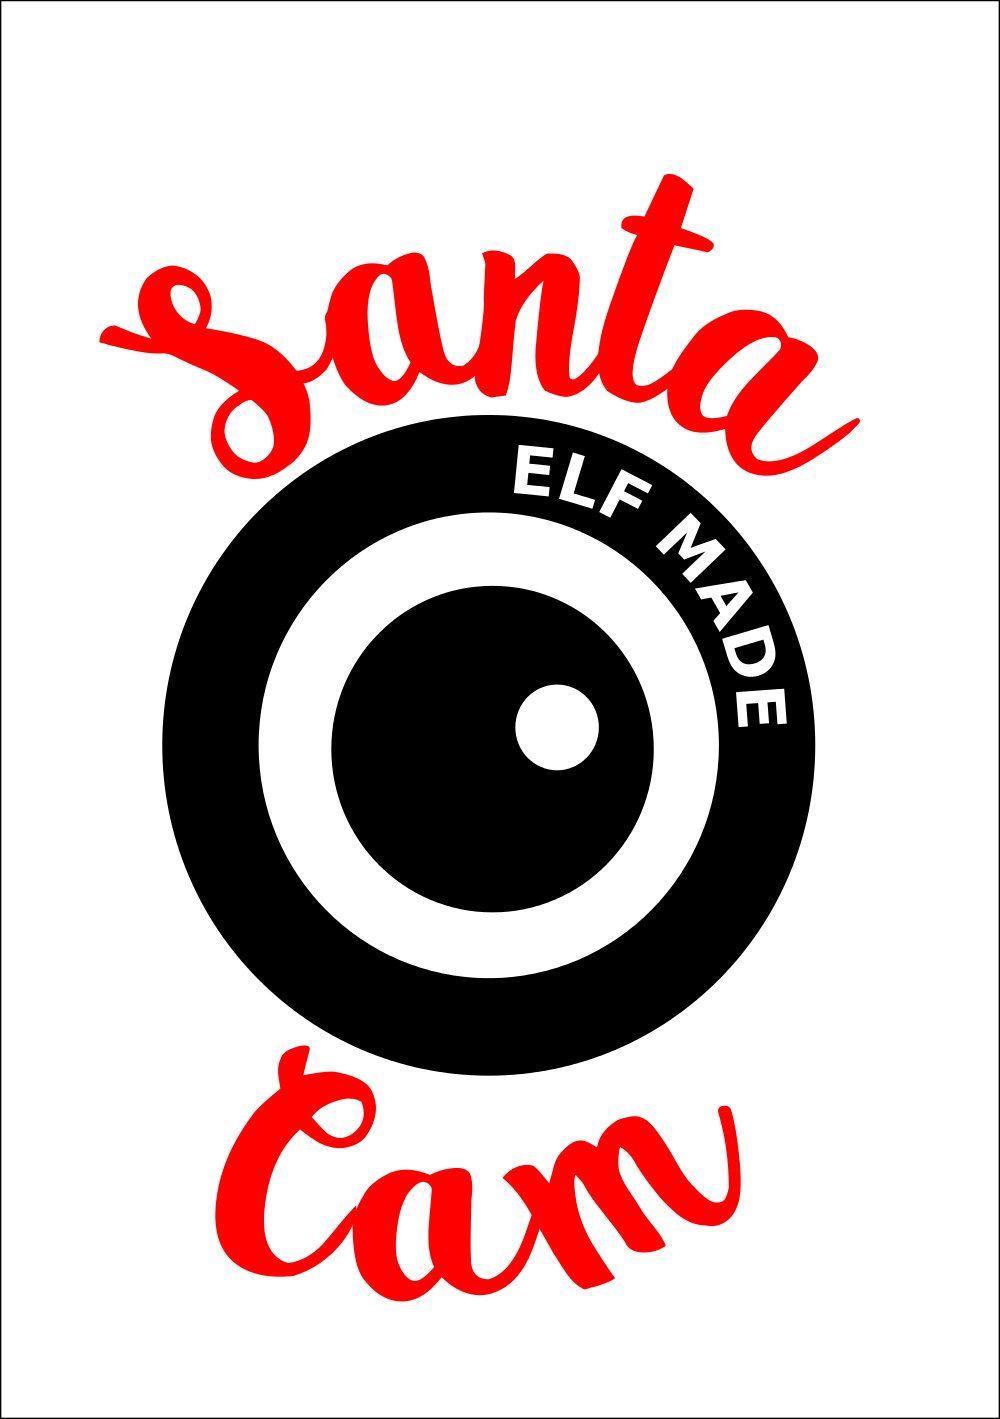 Svg Christmas, Santa Cam SVG, dxf, pdf Cuttable file, Santa.